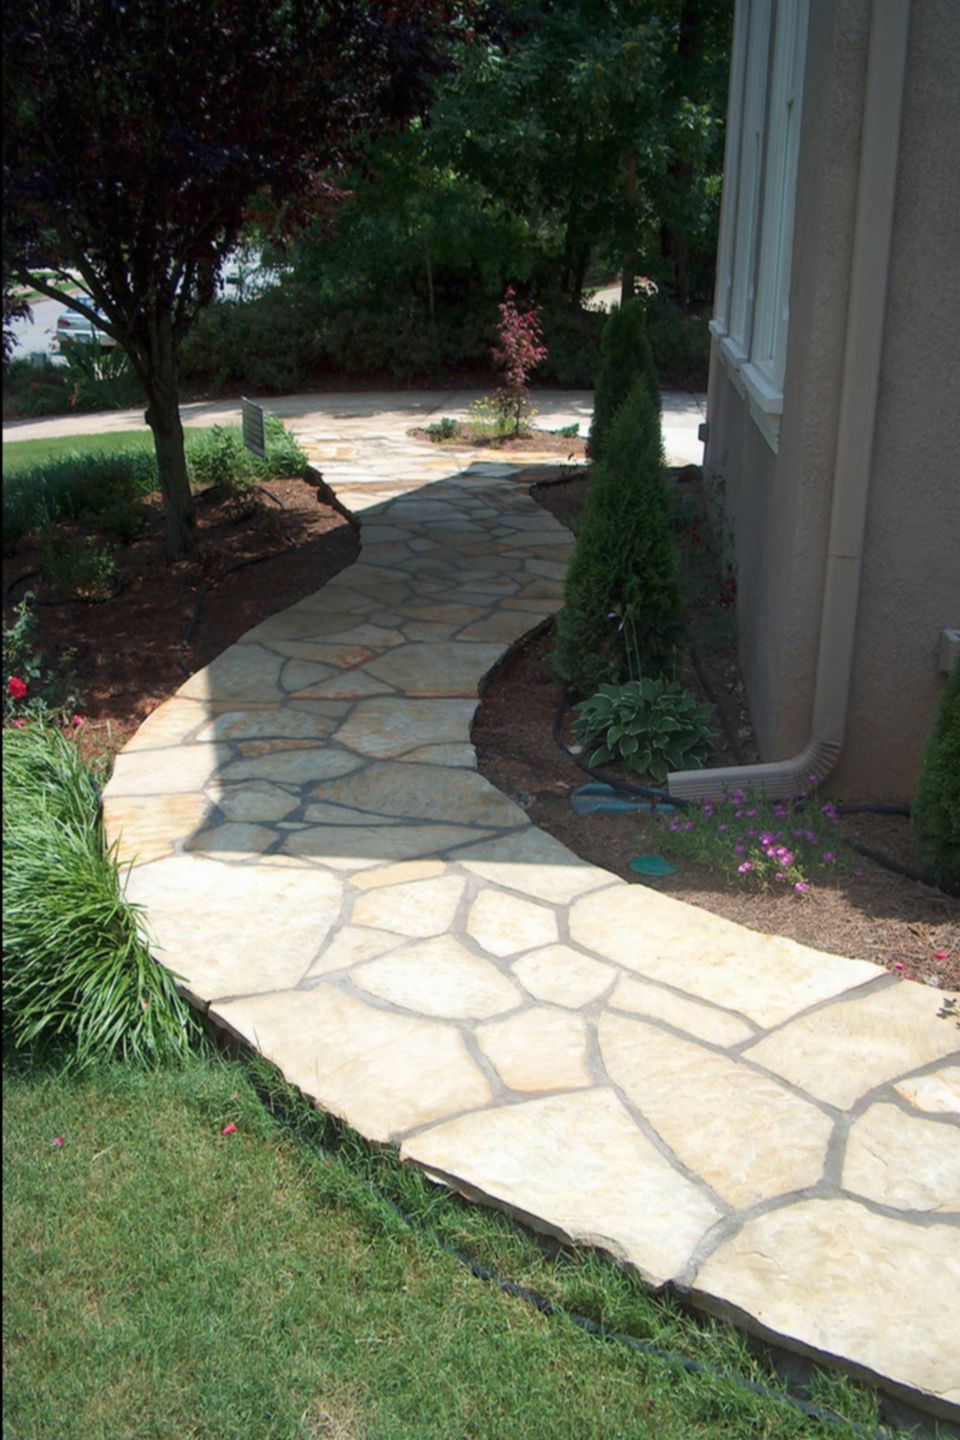 Uncategorized Flagstone Pathways smooth tight flagstone pathway mortared stone 1000 x 1500